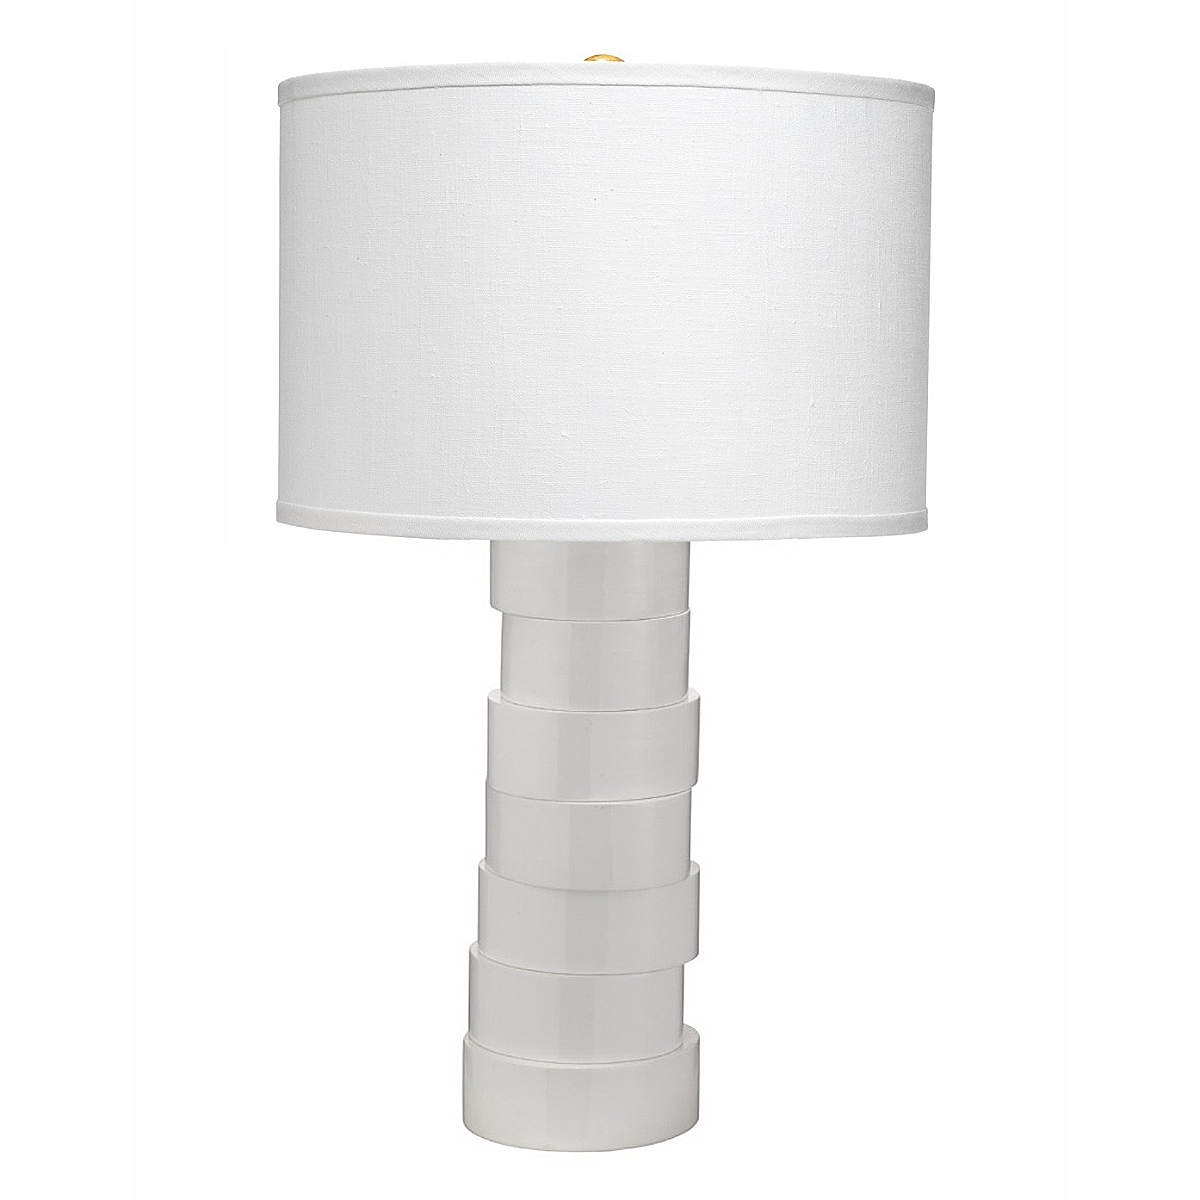 Stacked Table Lamp - White